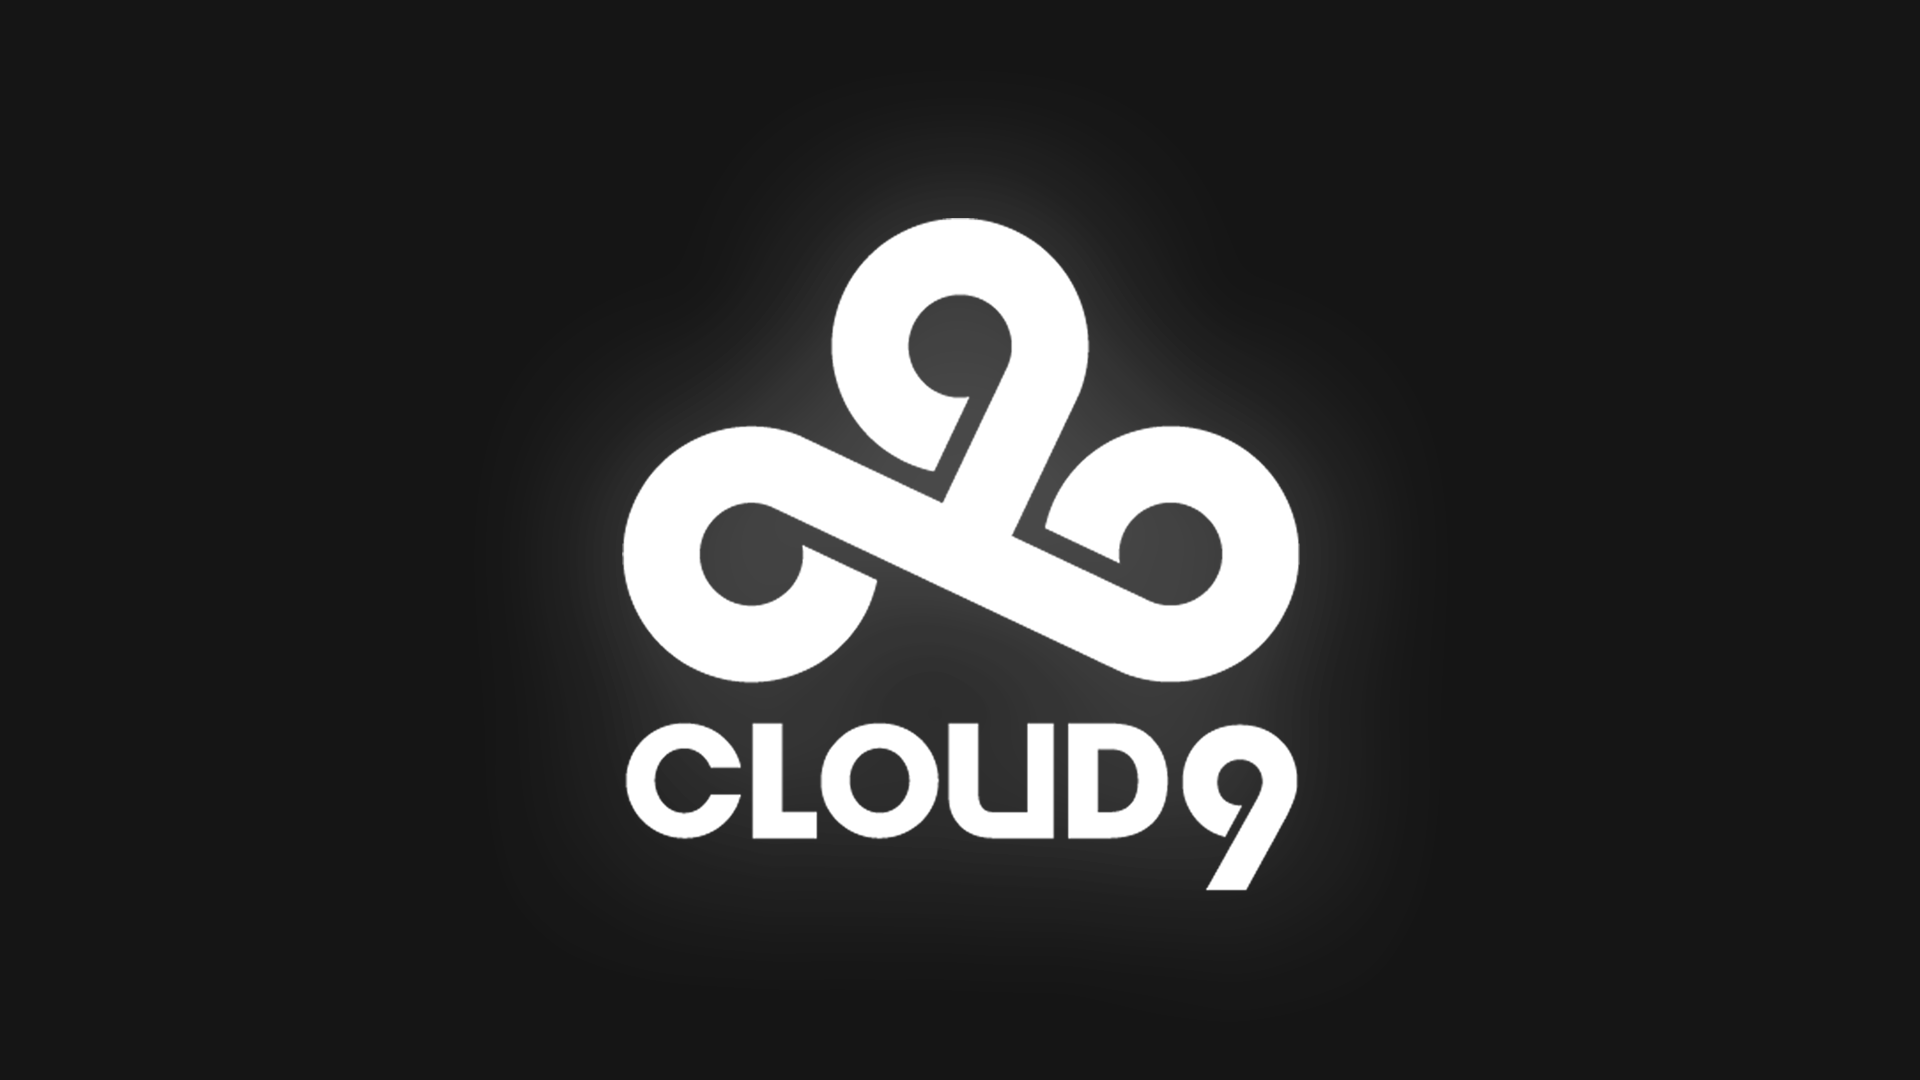 Cloud9 Wallpapers Wallpaper Cave